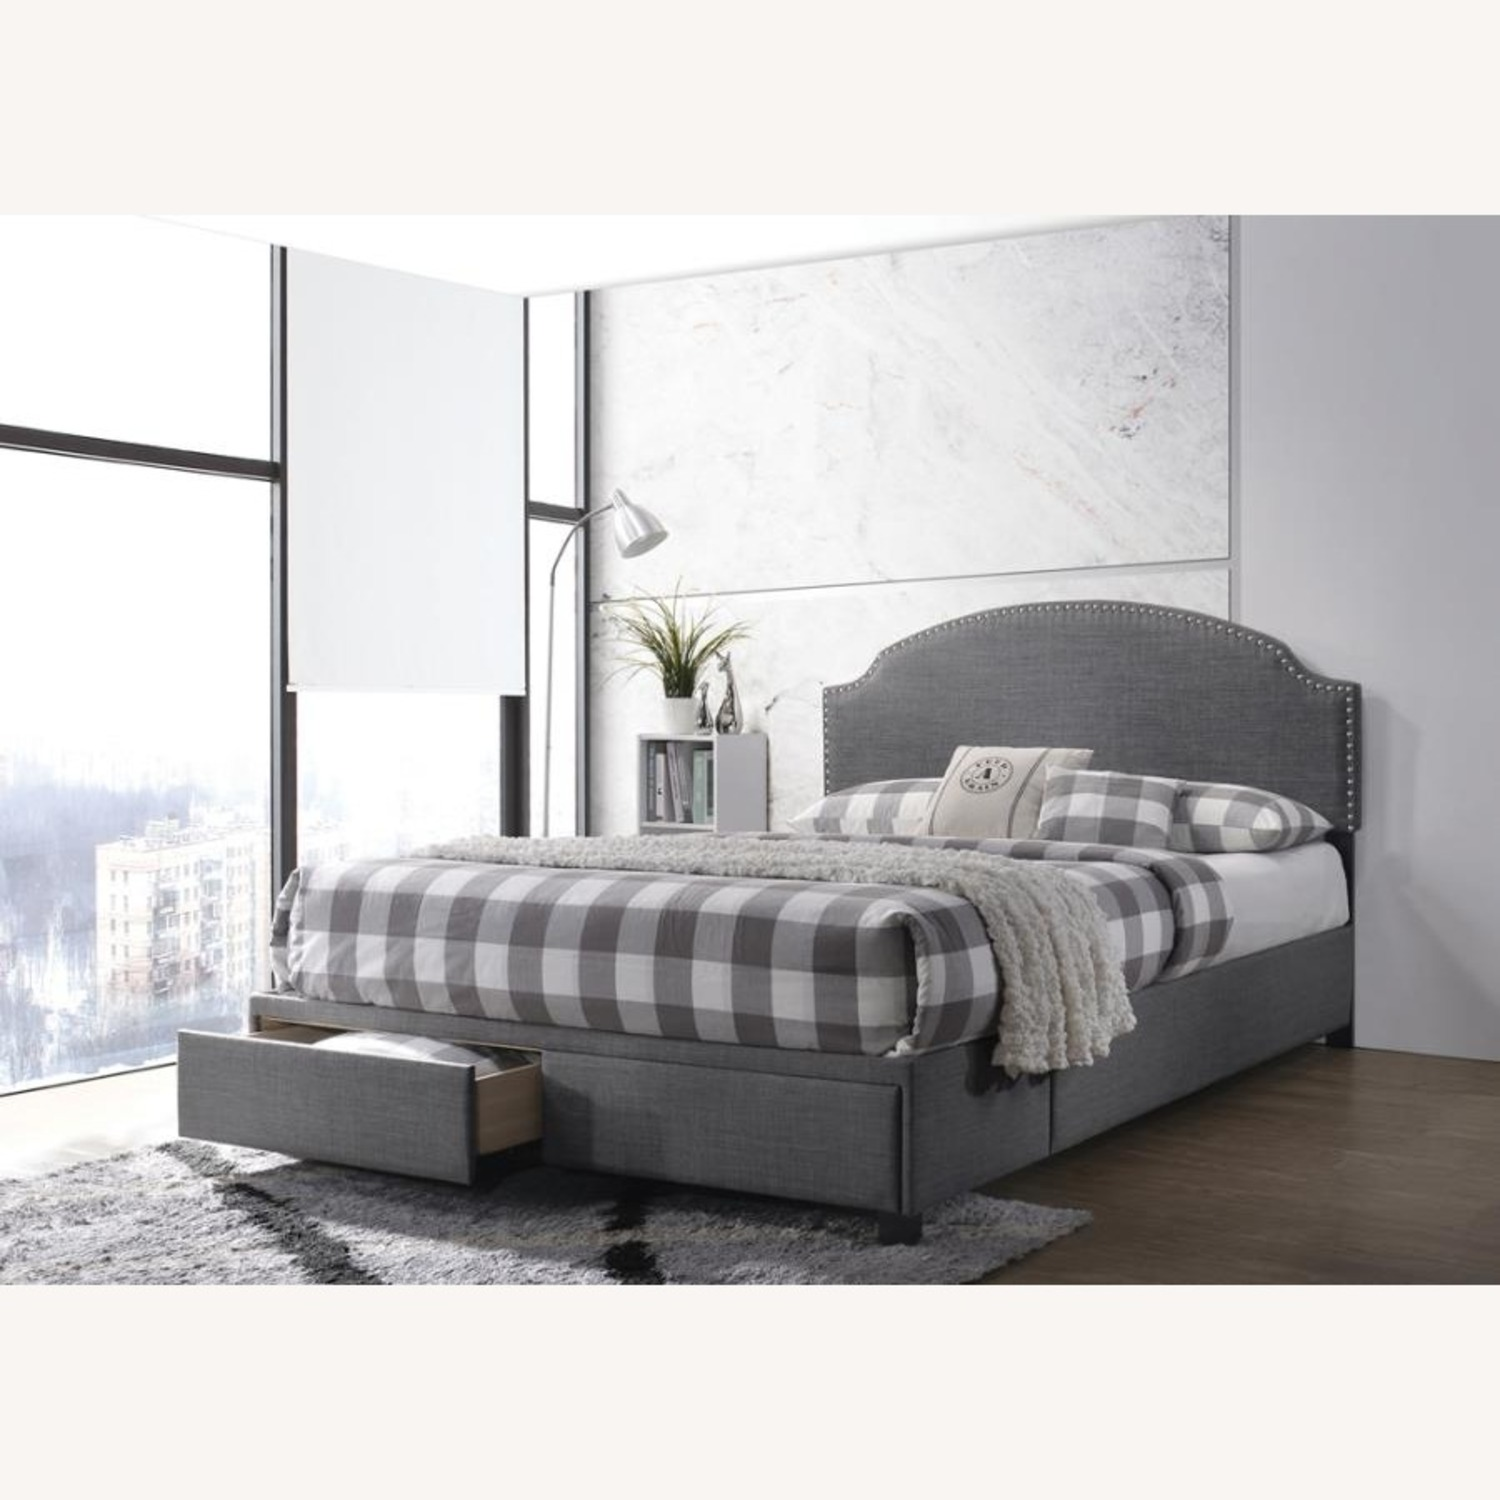 Queen Storage Bed In Charcoal Fabric W/ 2 Drawers - image-2